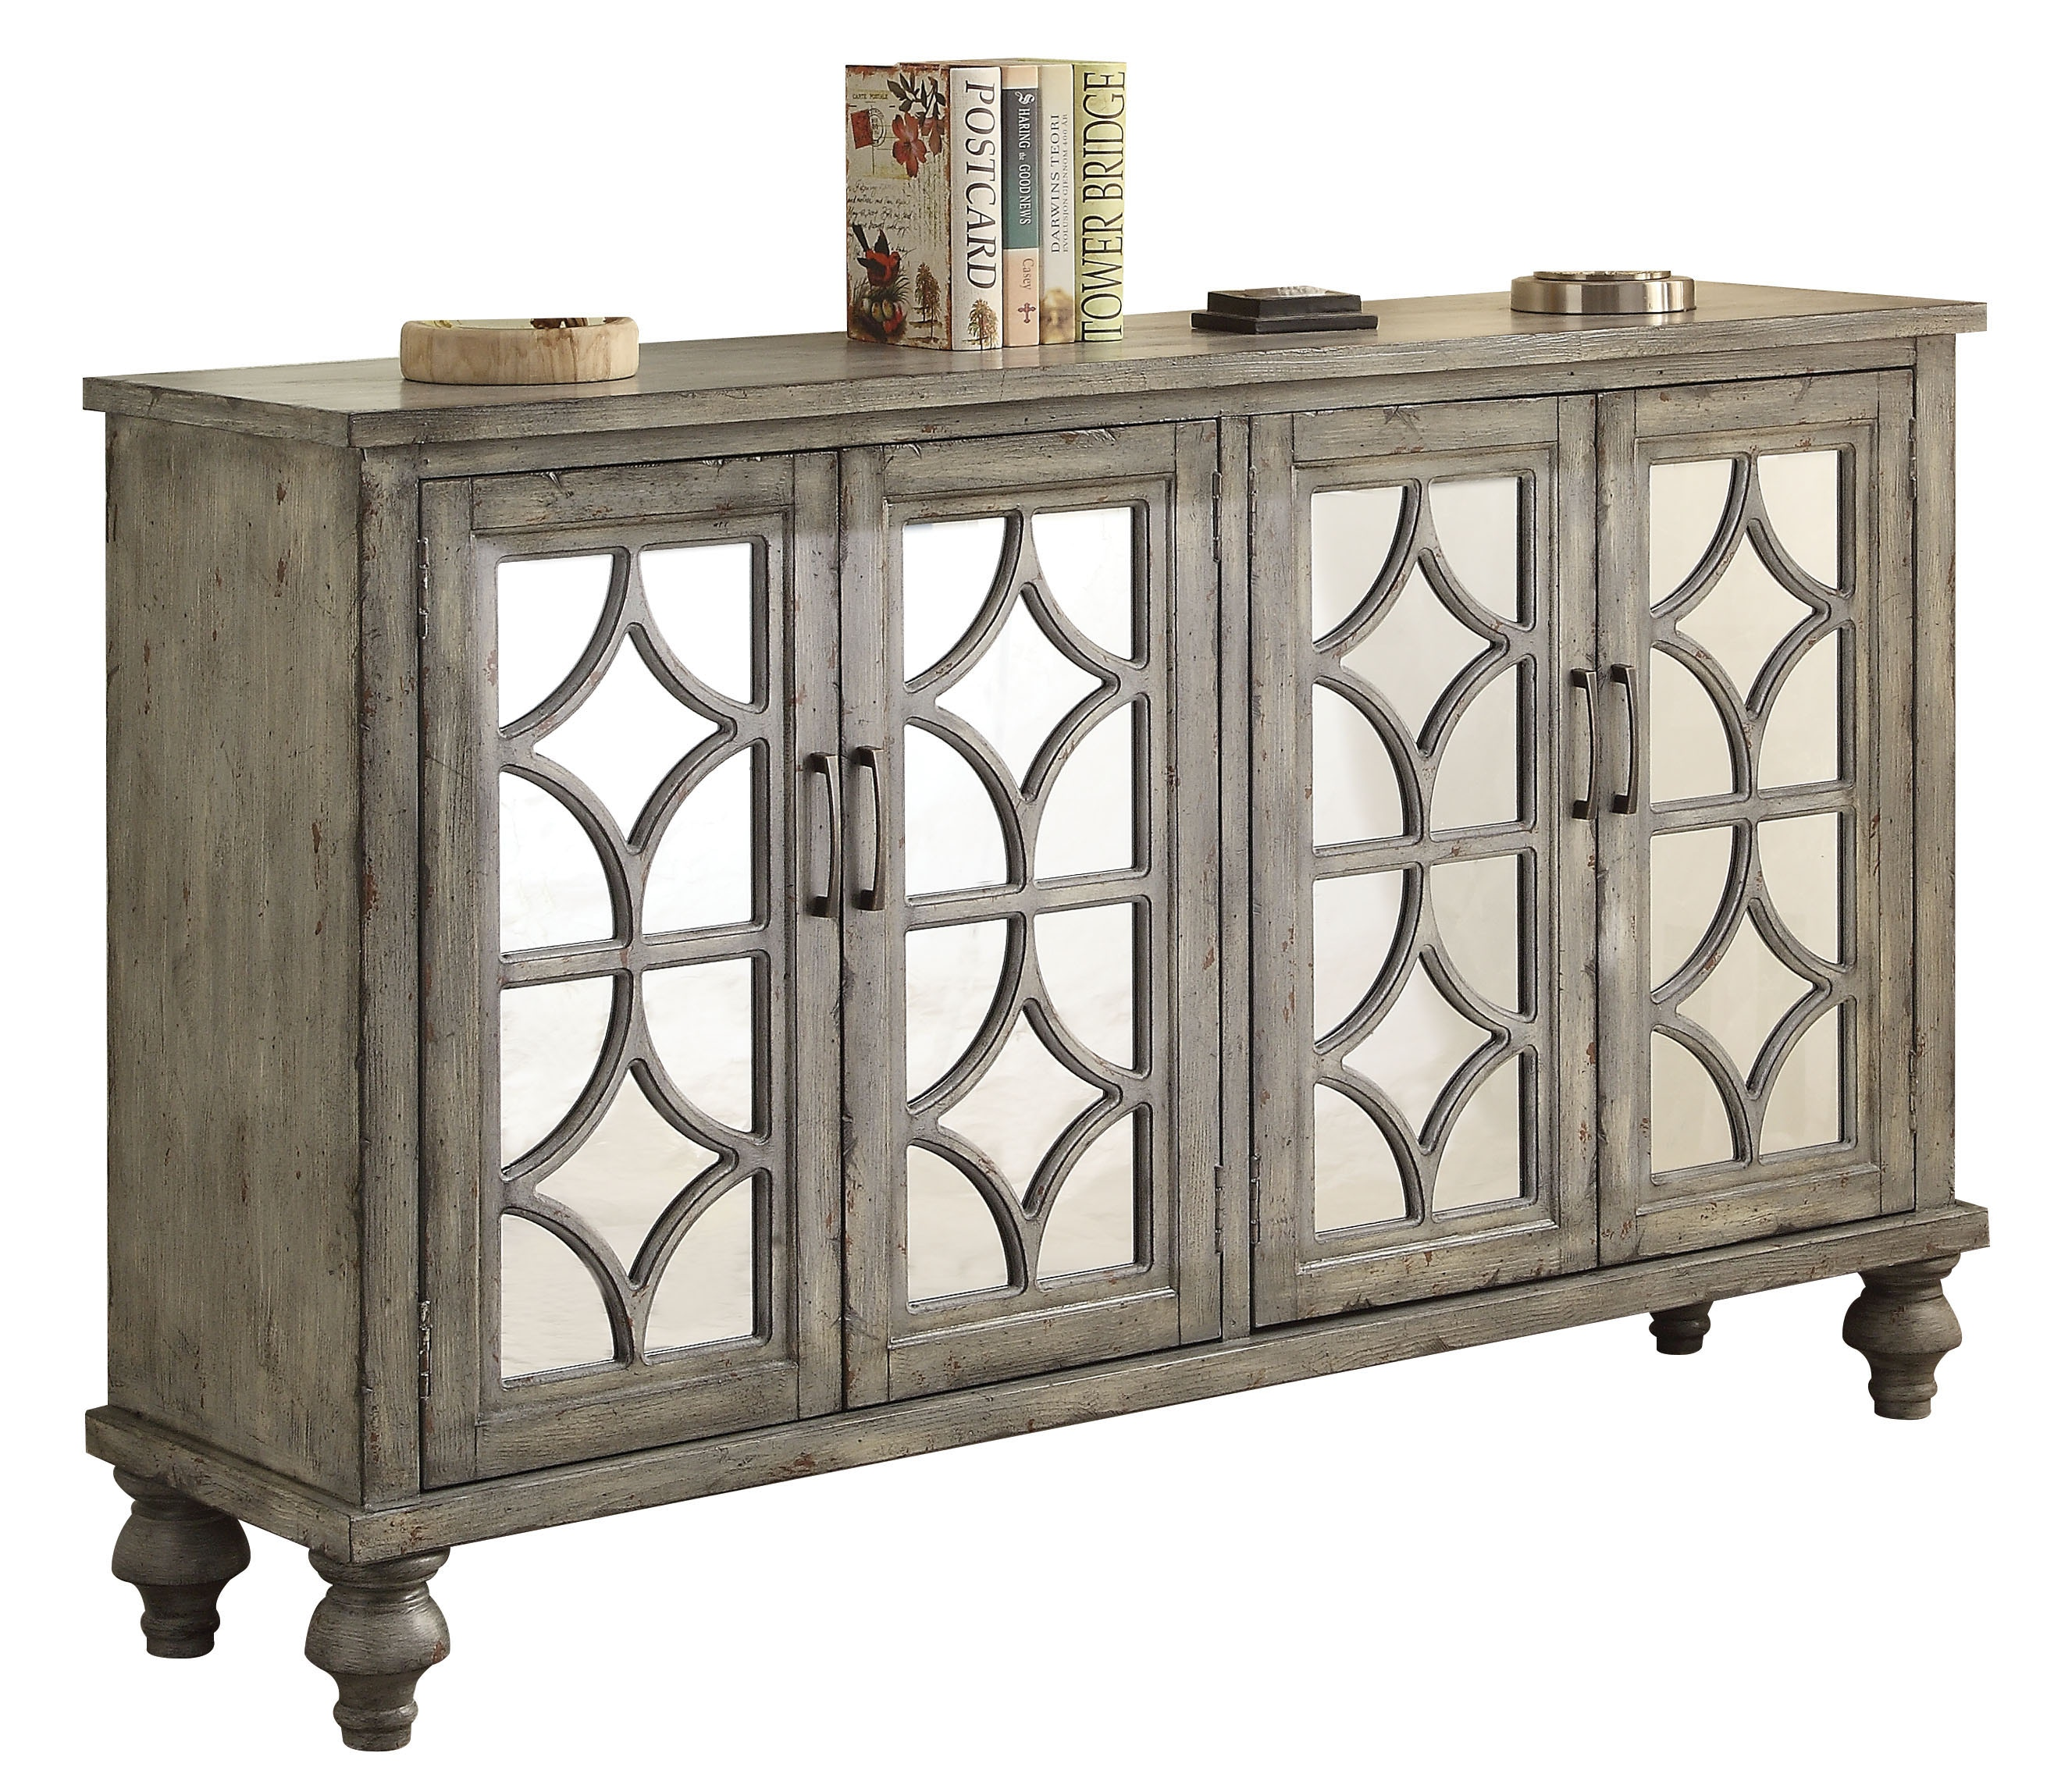 living room console light hardwood floors acme furniture table 4 doors 90280 the at mall